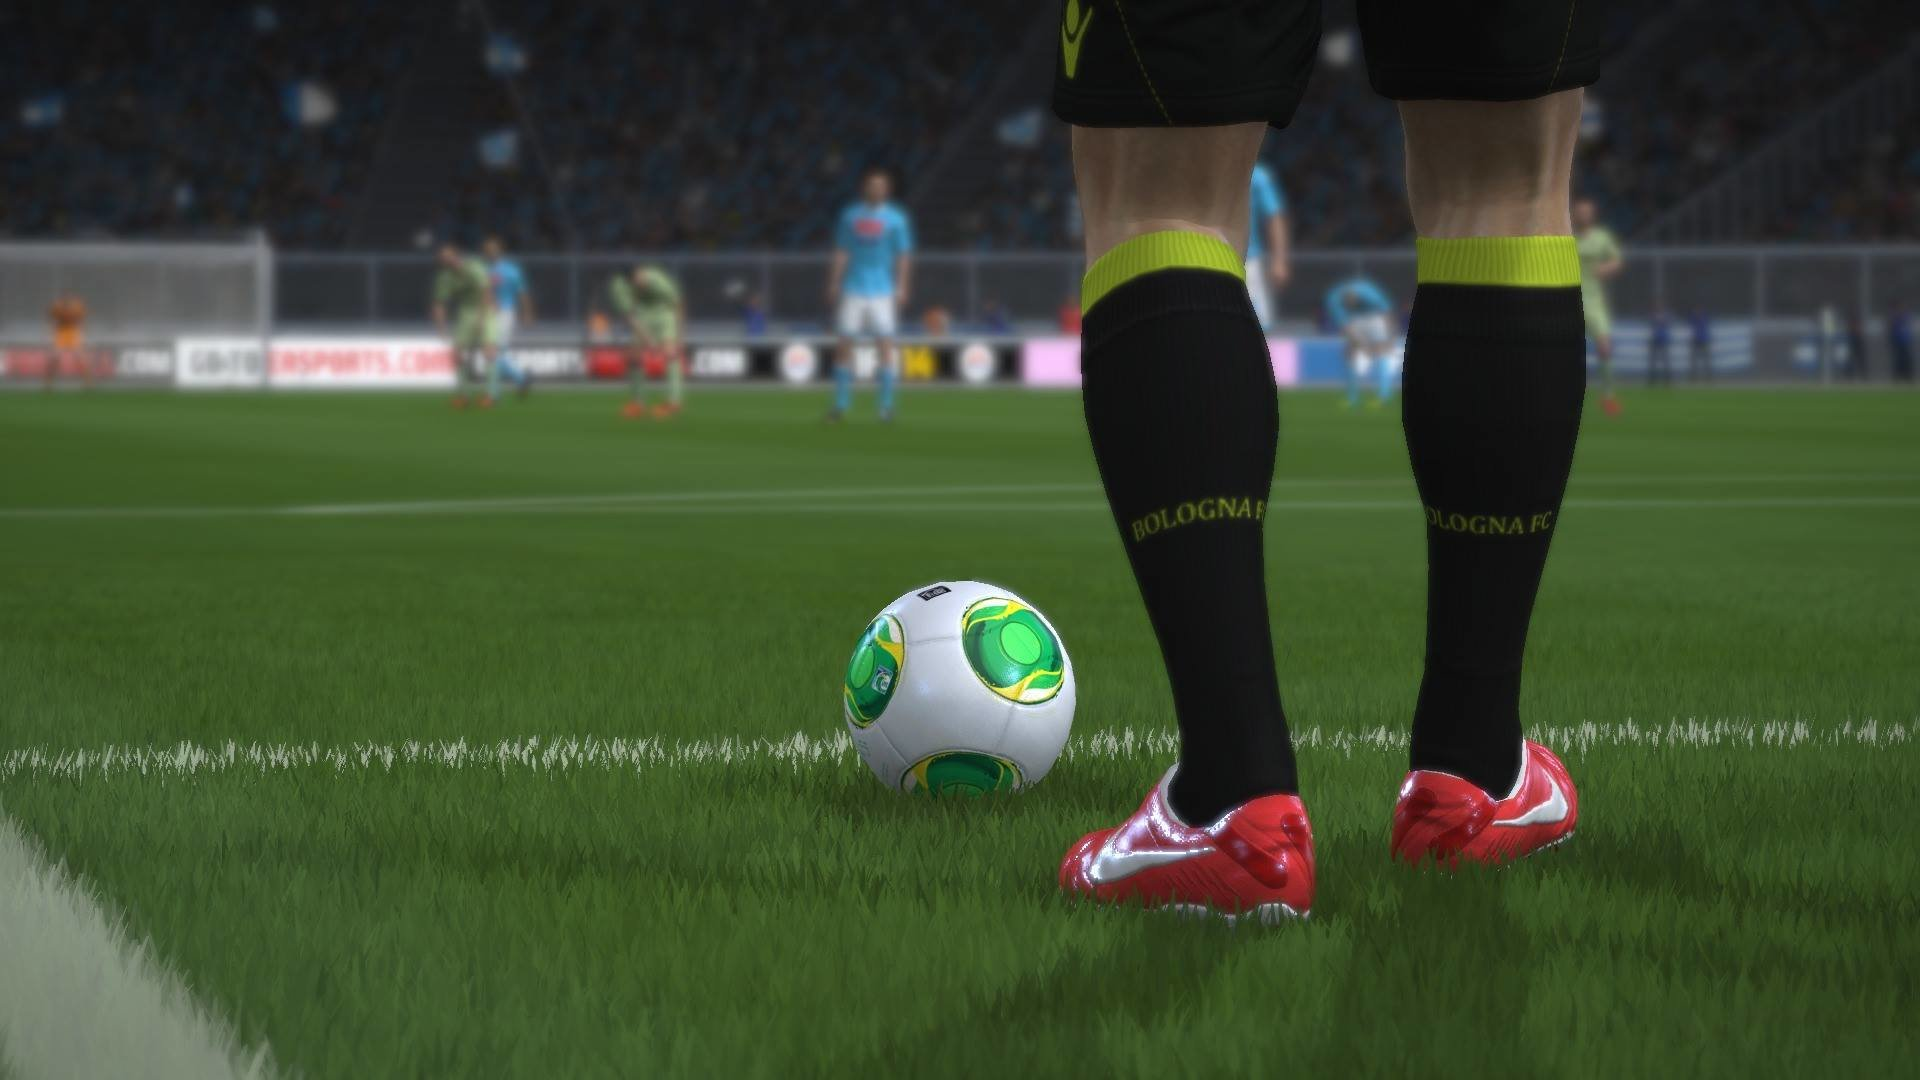 Fifa 14 wallpapers hd for desktop backgrounds fifa 14 backgrounds hd for desktop voltagebd Images